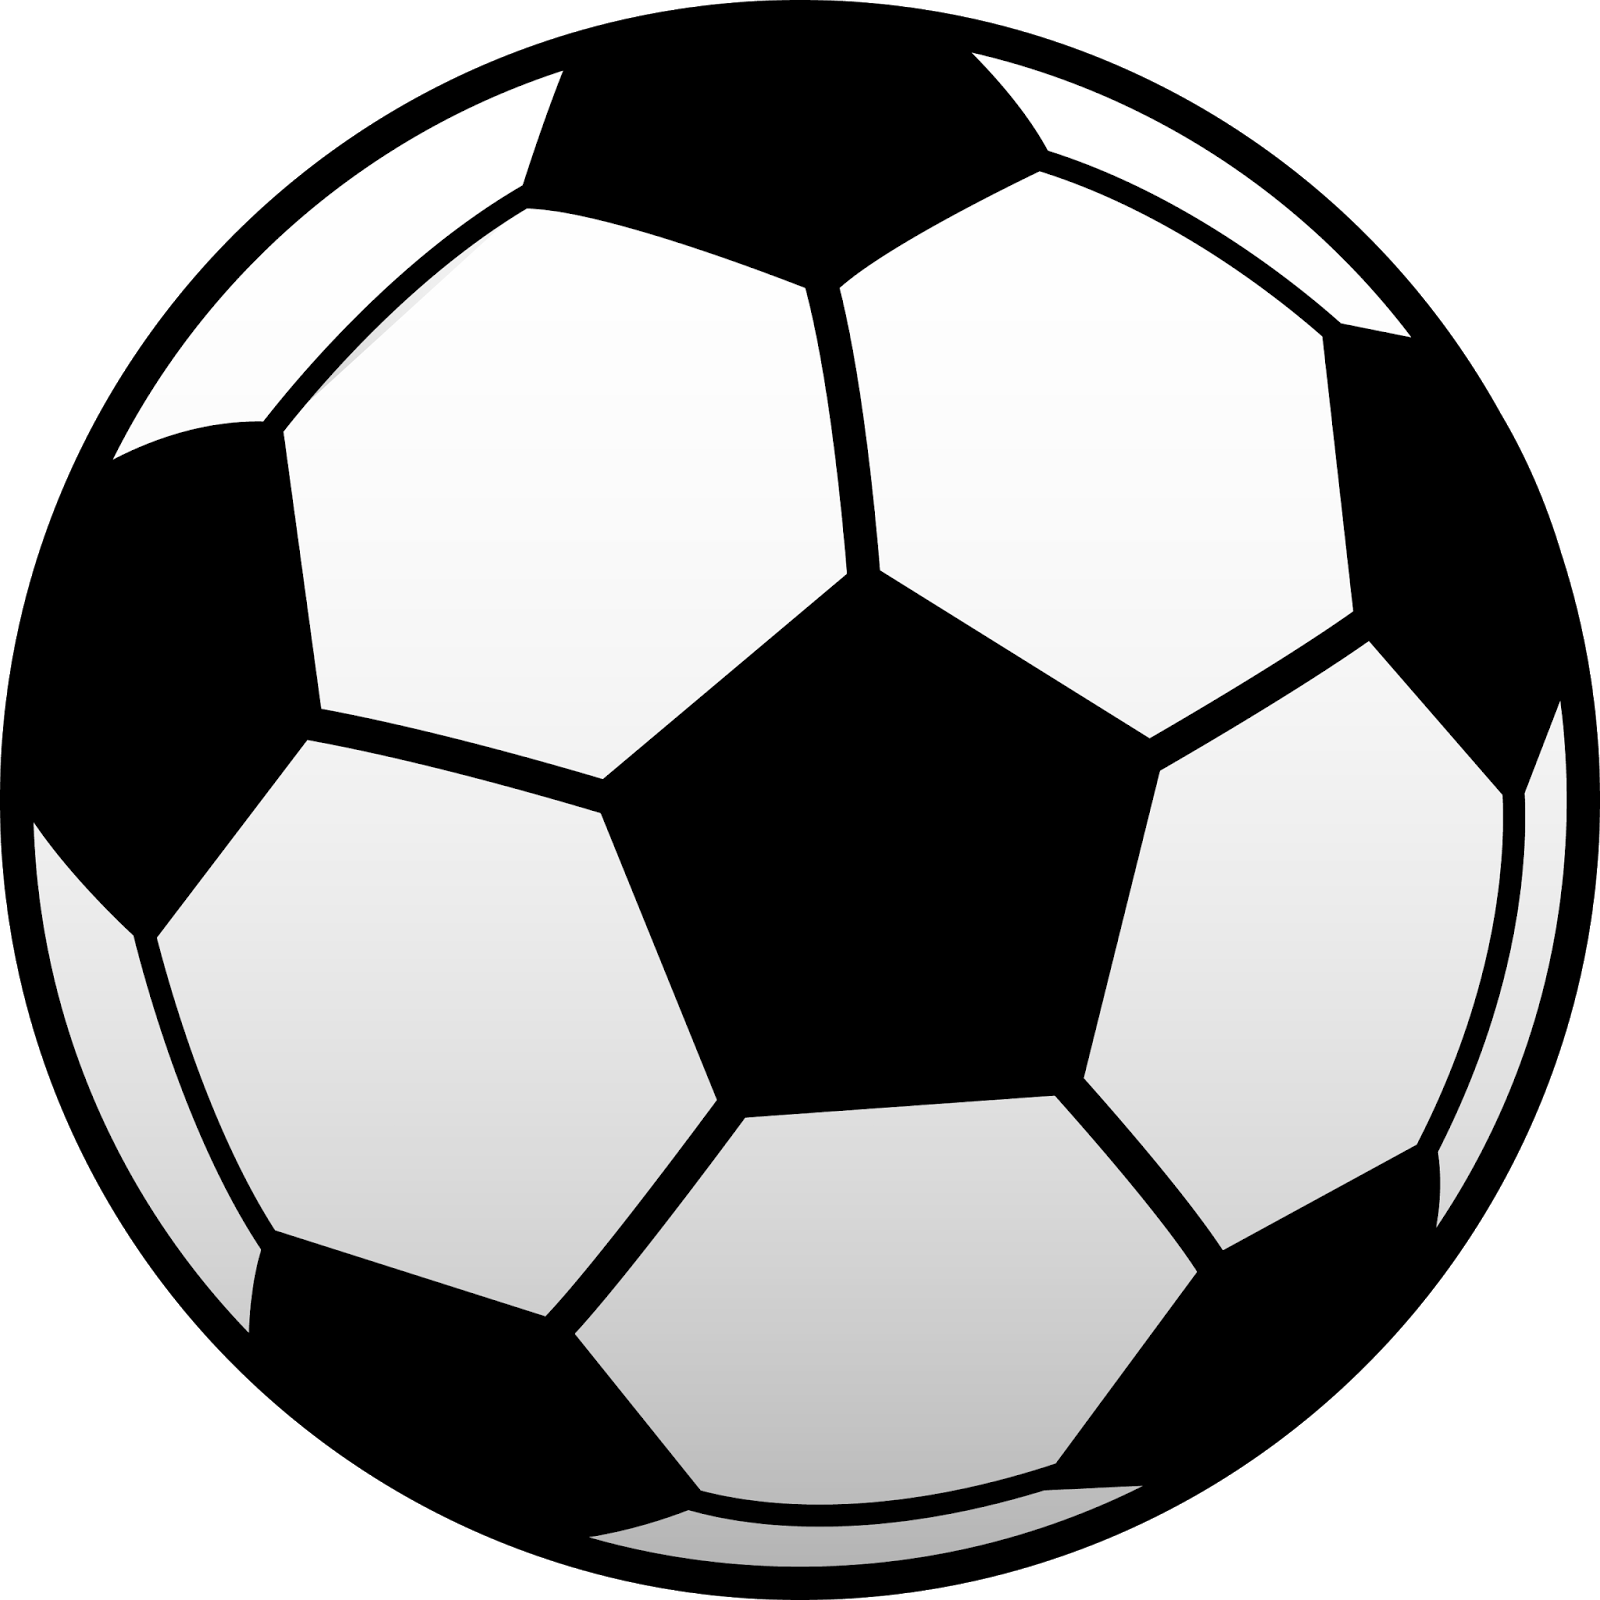 1600x1600 Soccer Ball Clipart, Suggestions For Soccer Ball Clipart, Download